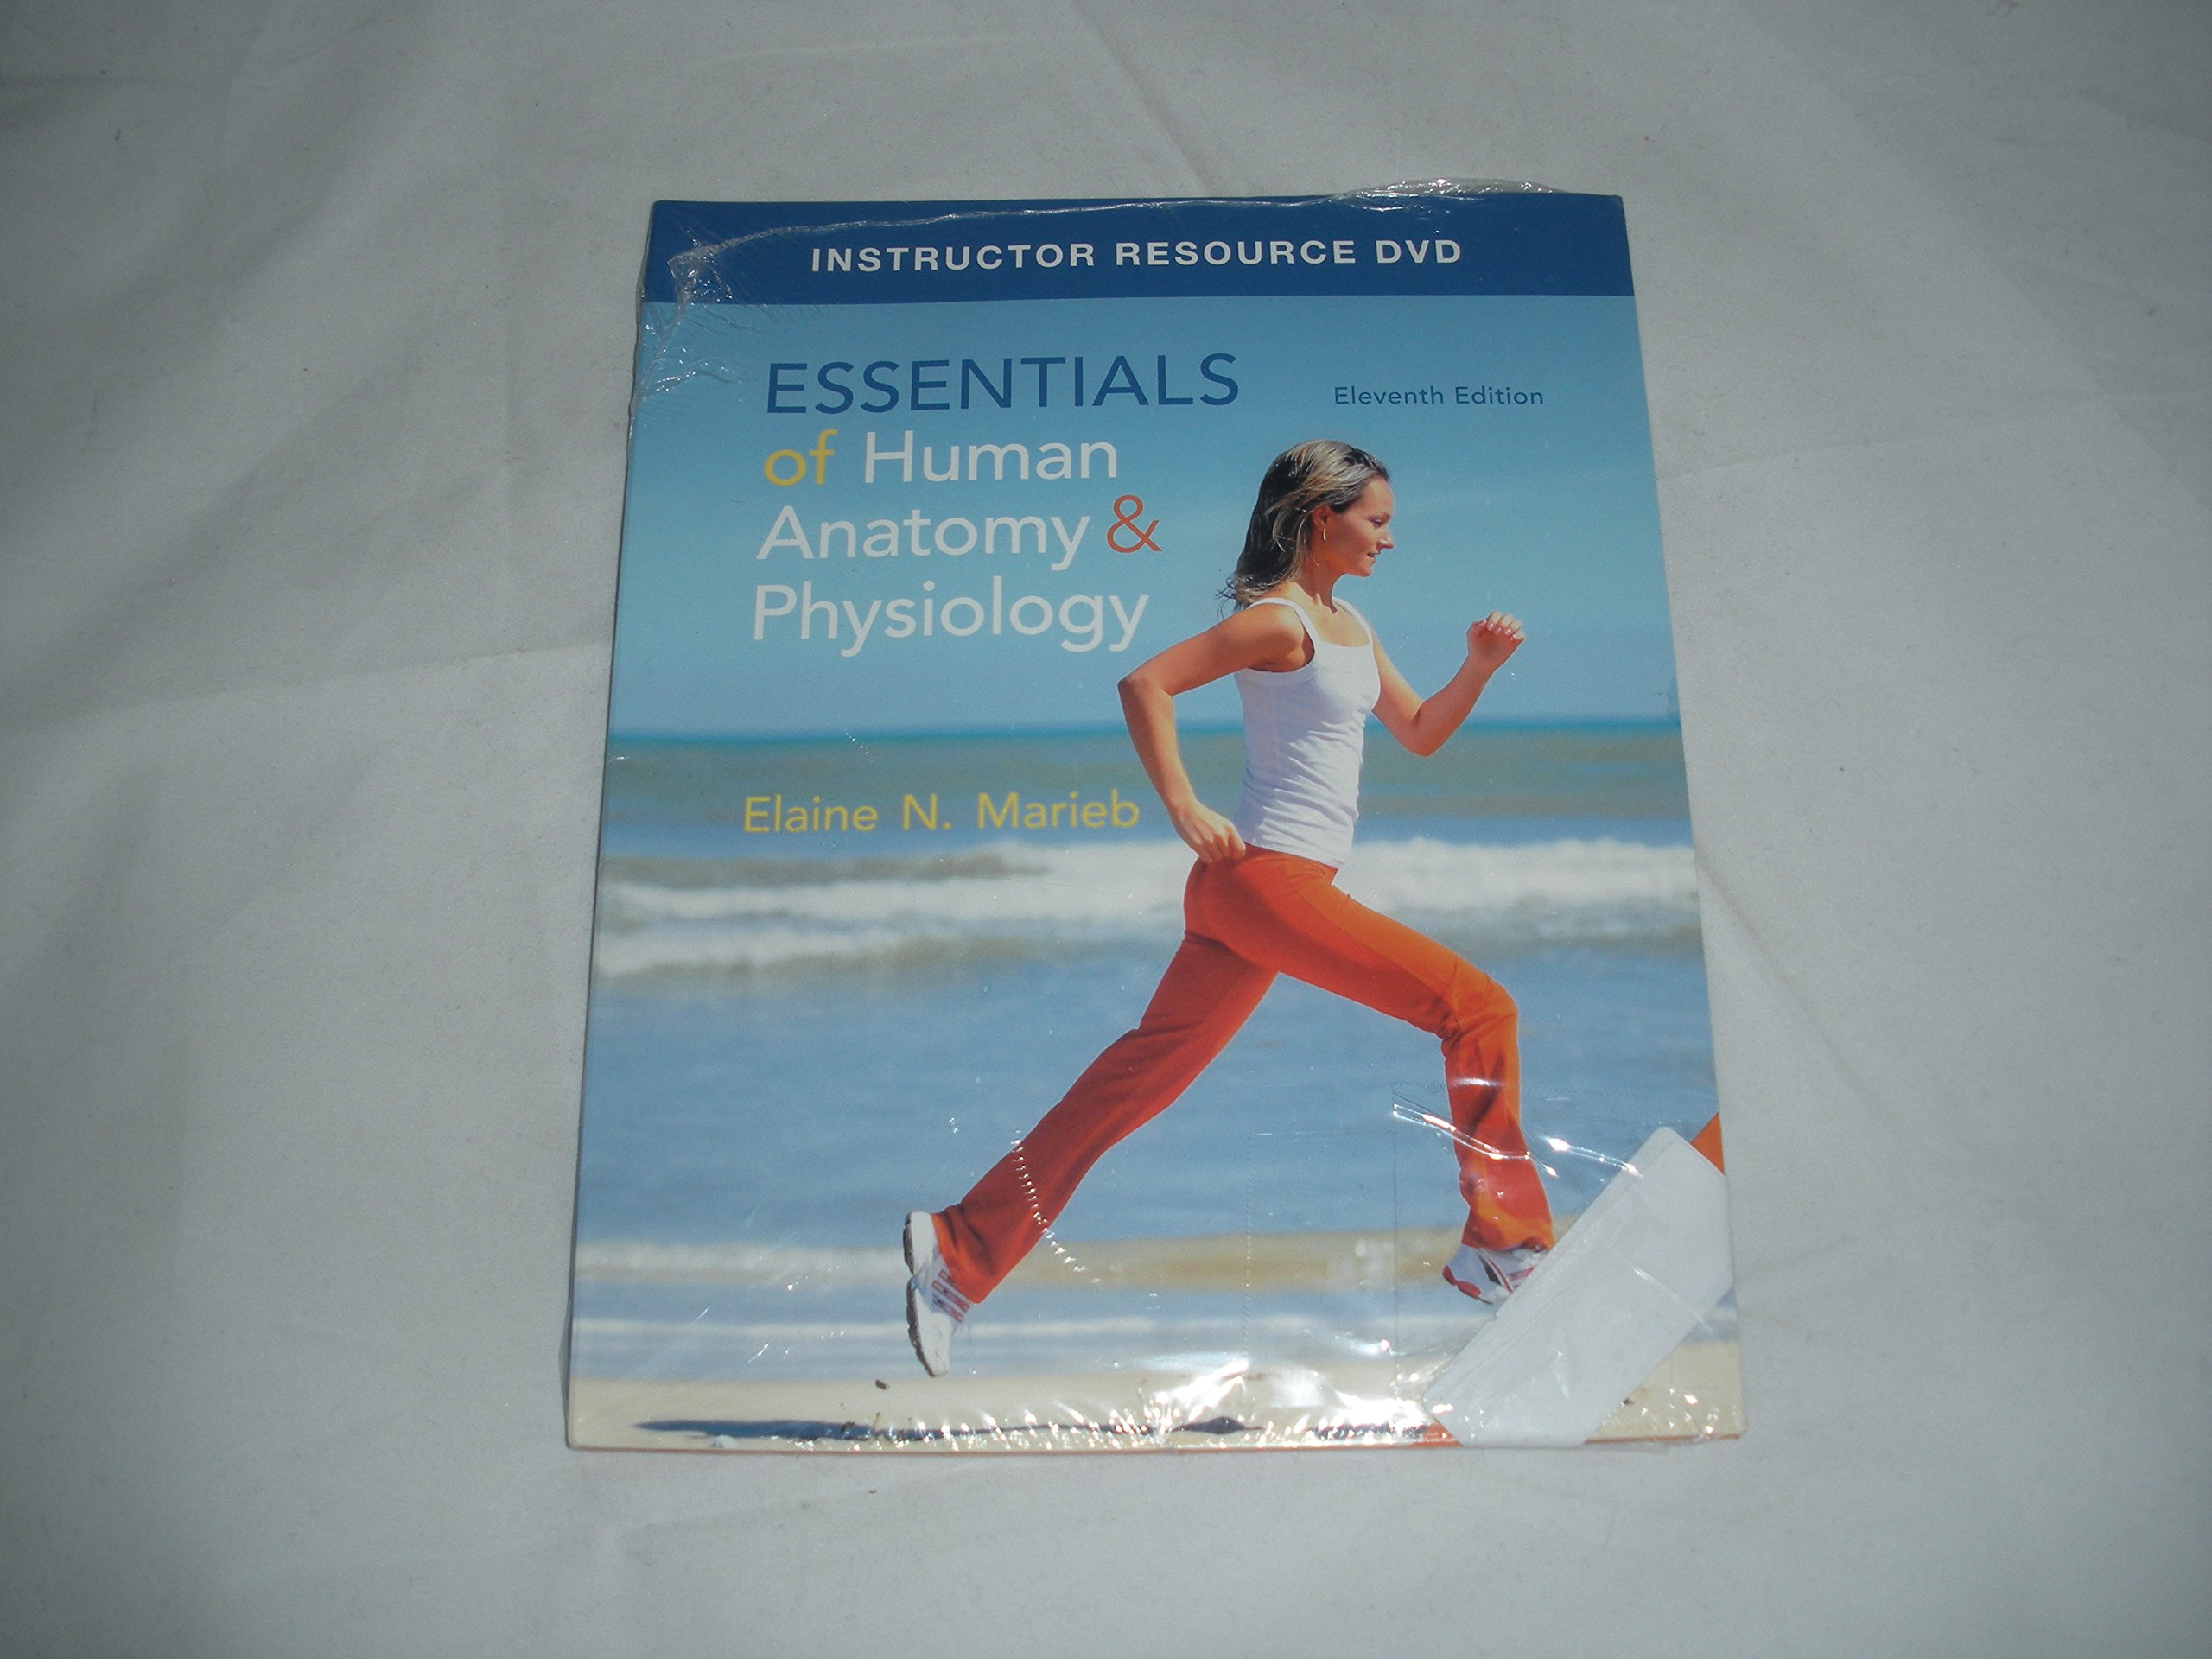 Essentials of Human Anatomy & Physiology - Instructor Resource DVD ...